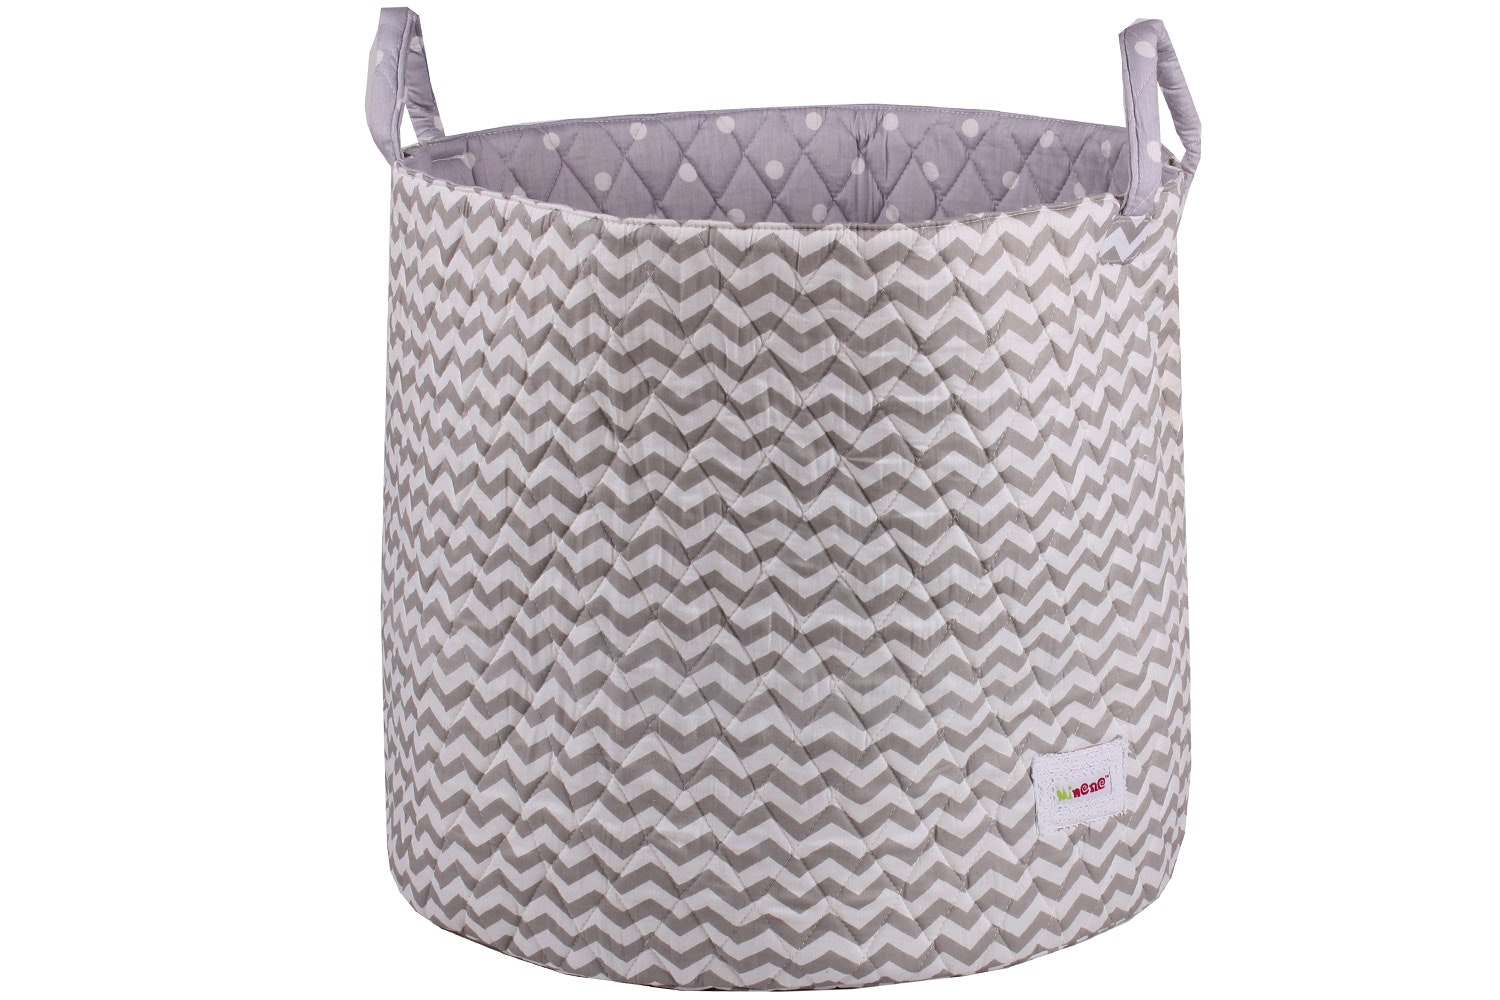 Minene Large Storage Basket | Taupe Chevron